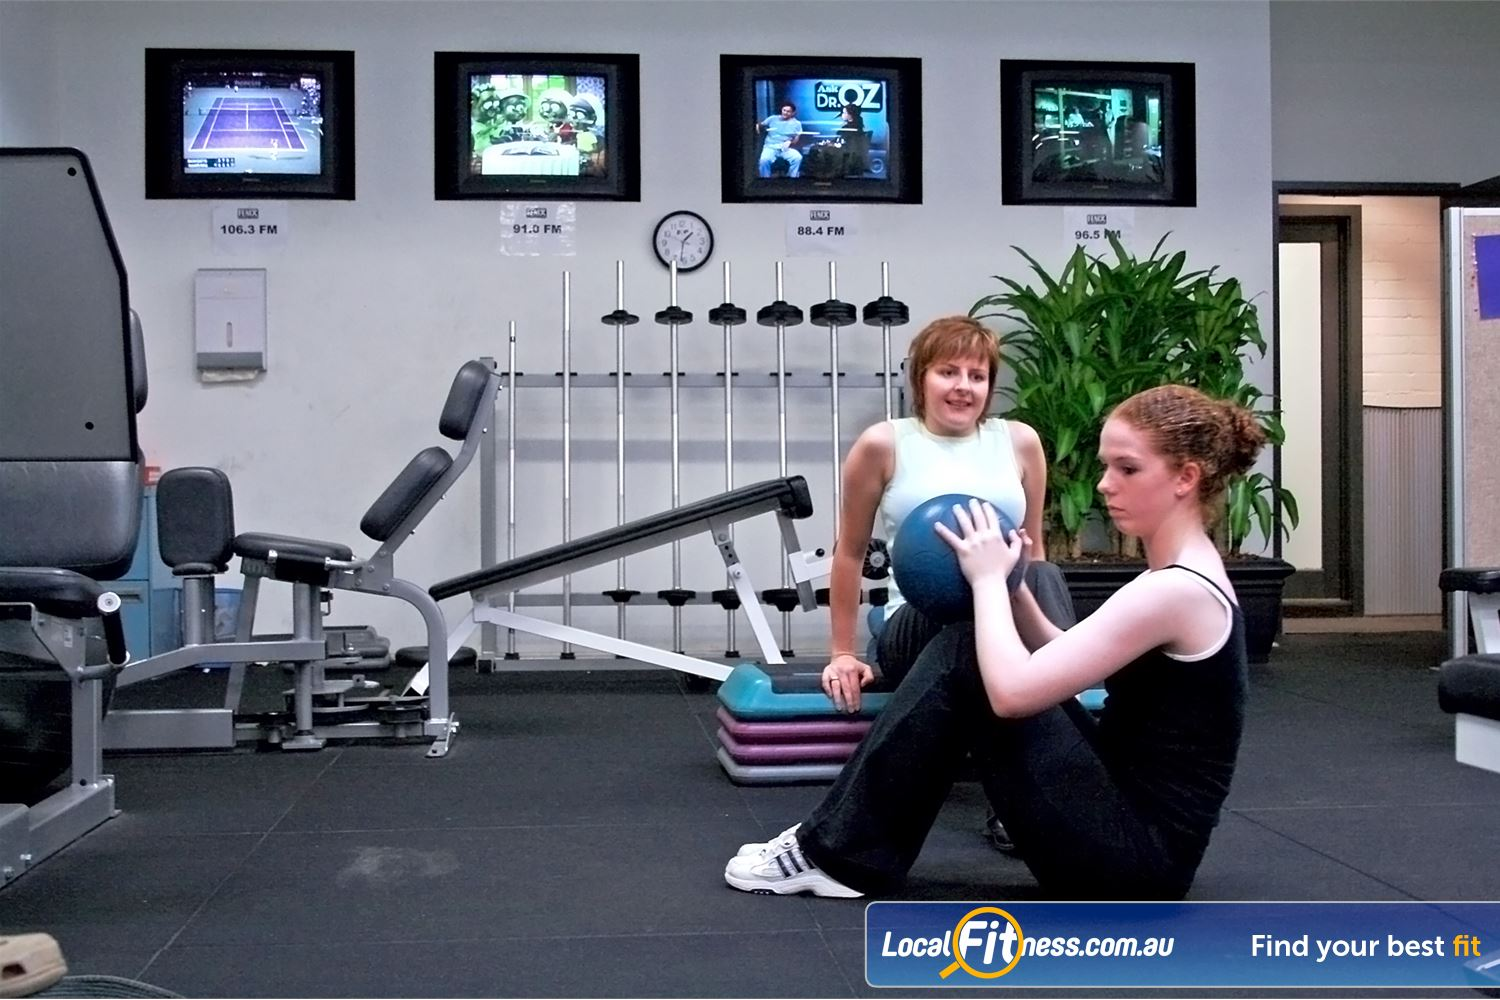 Goodlife Health Clubs Near Werribee We provide a dedicated Hoppers Crossings ladies gym.